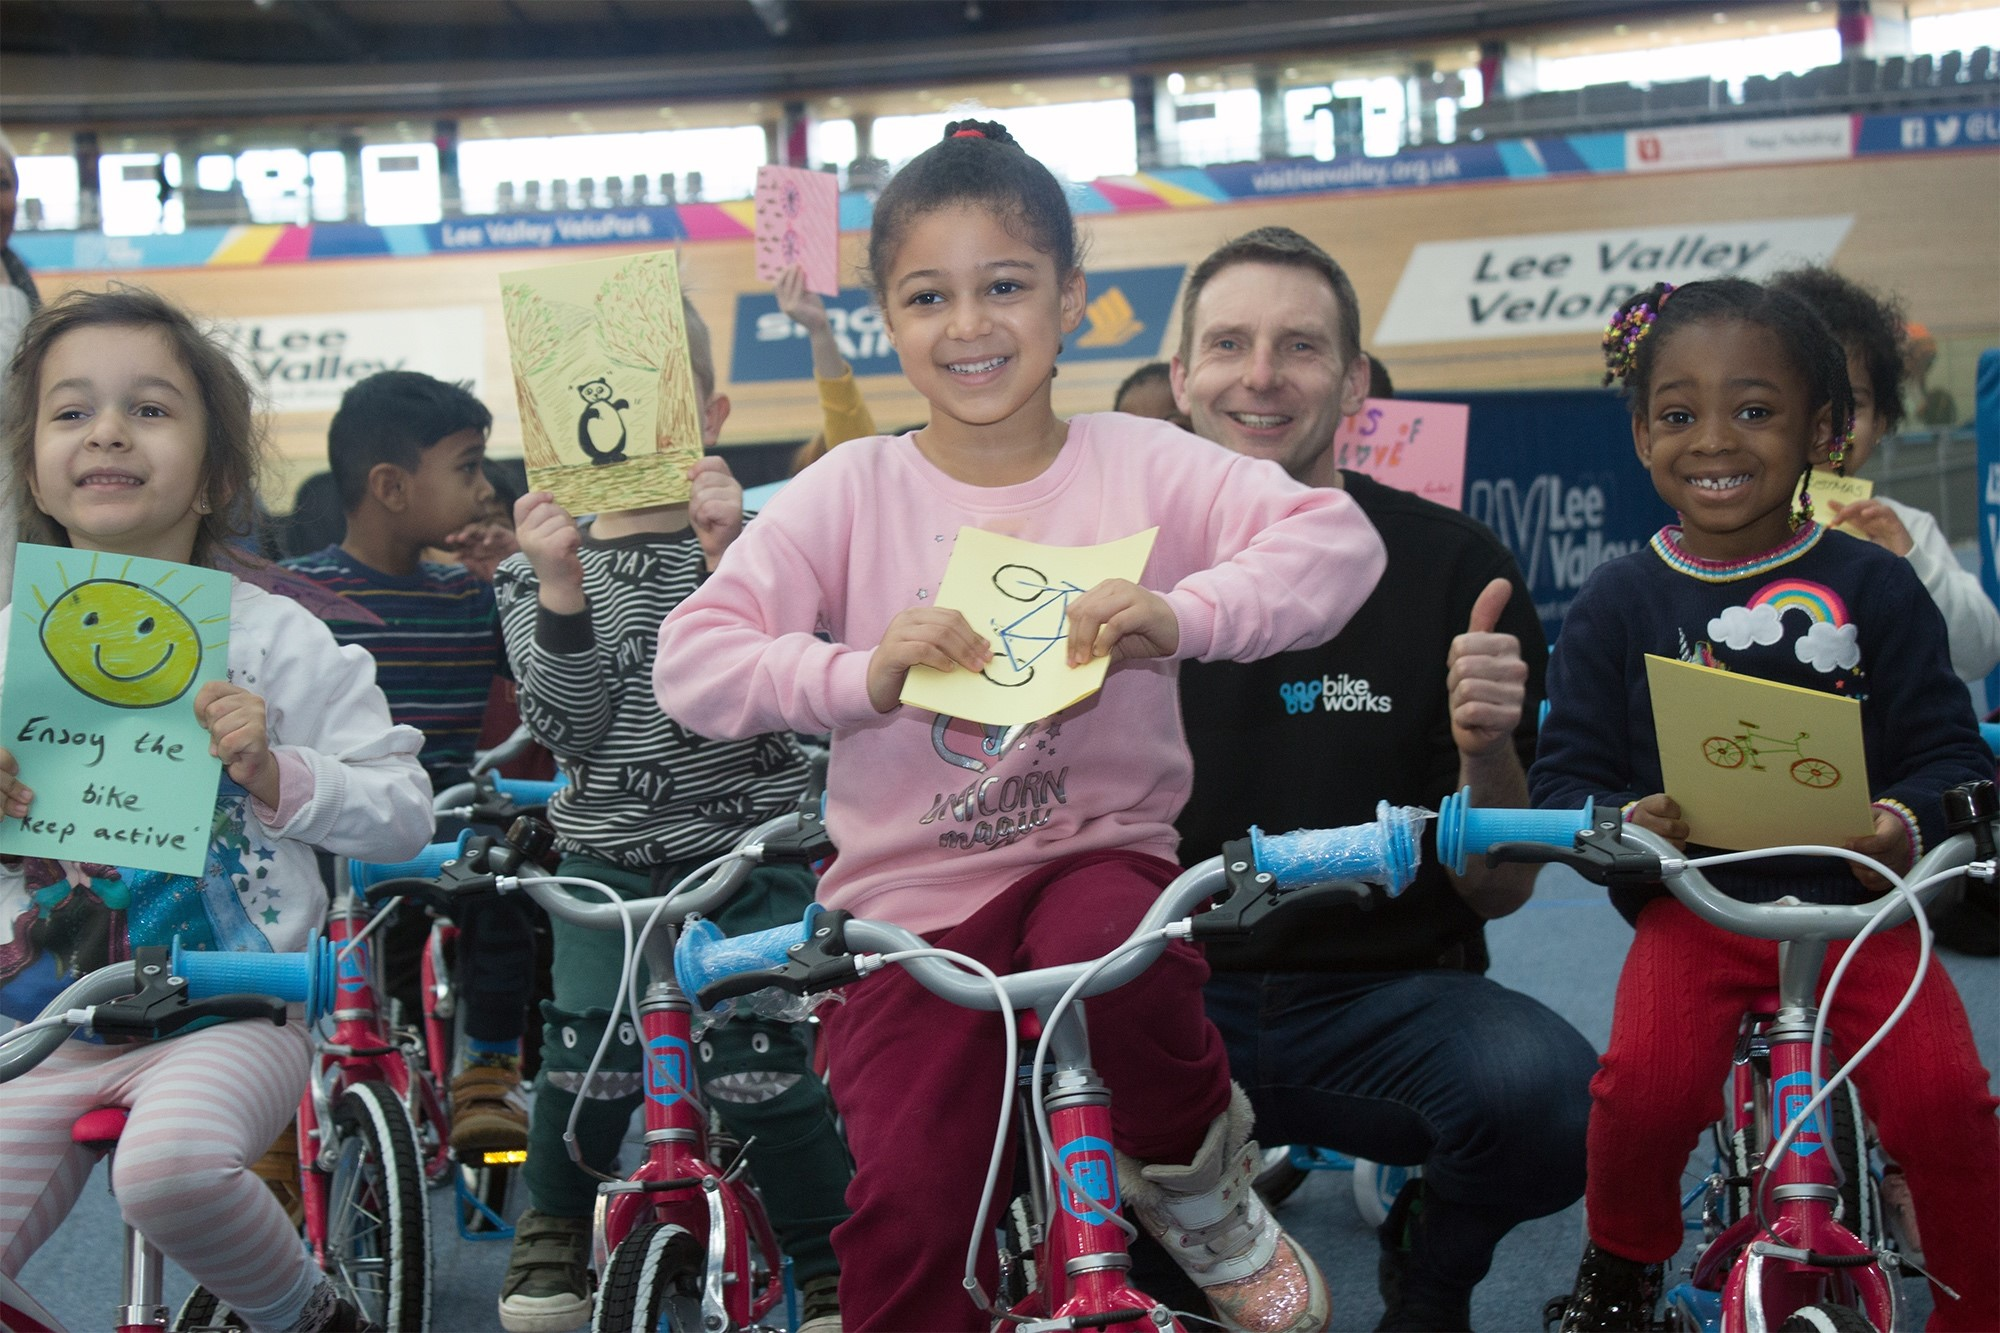 Two of London's Most Successful Social Enterprises Call for the Mayor and TfL to Keep Children Active by Introducing Bicycle Scheme Across All London's Nurseries